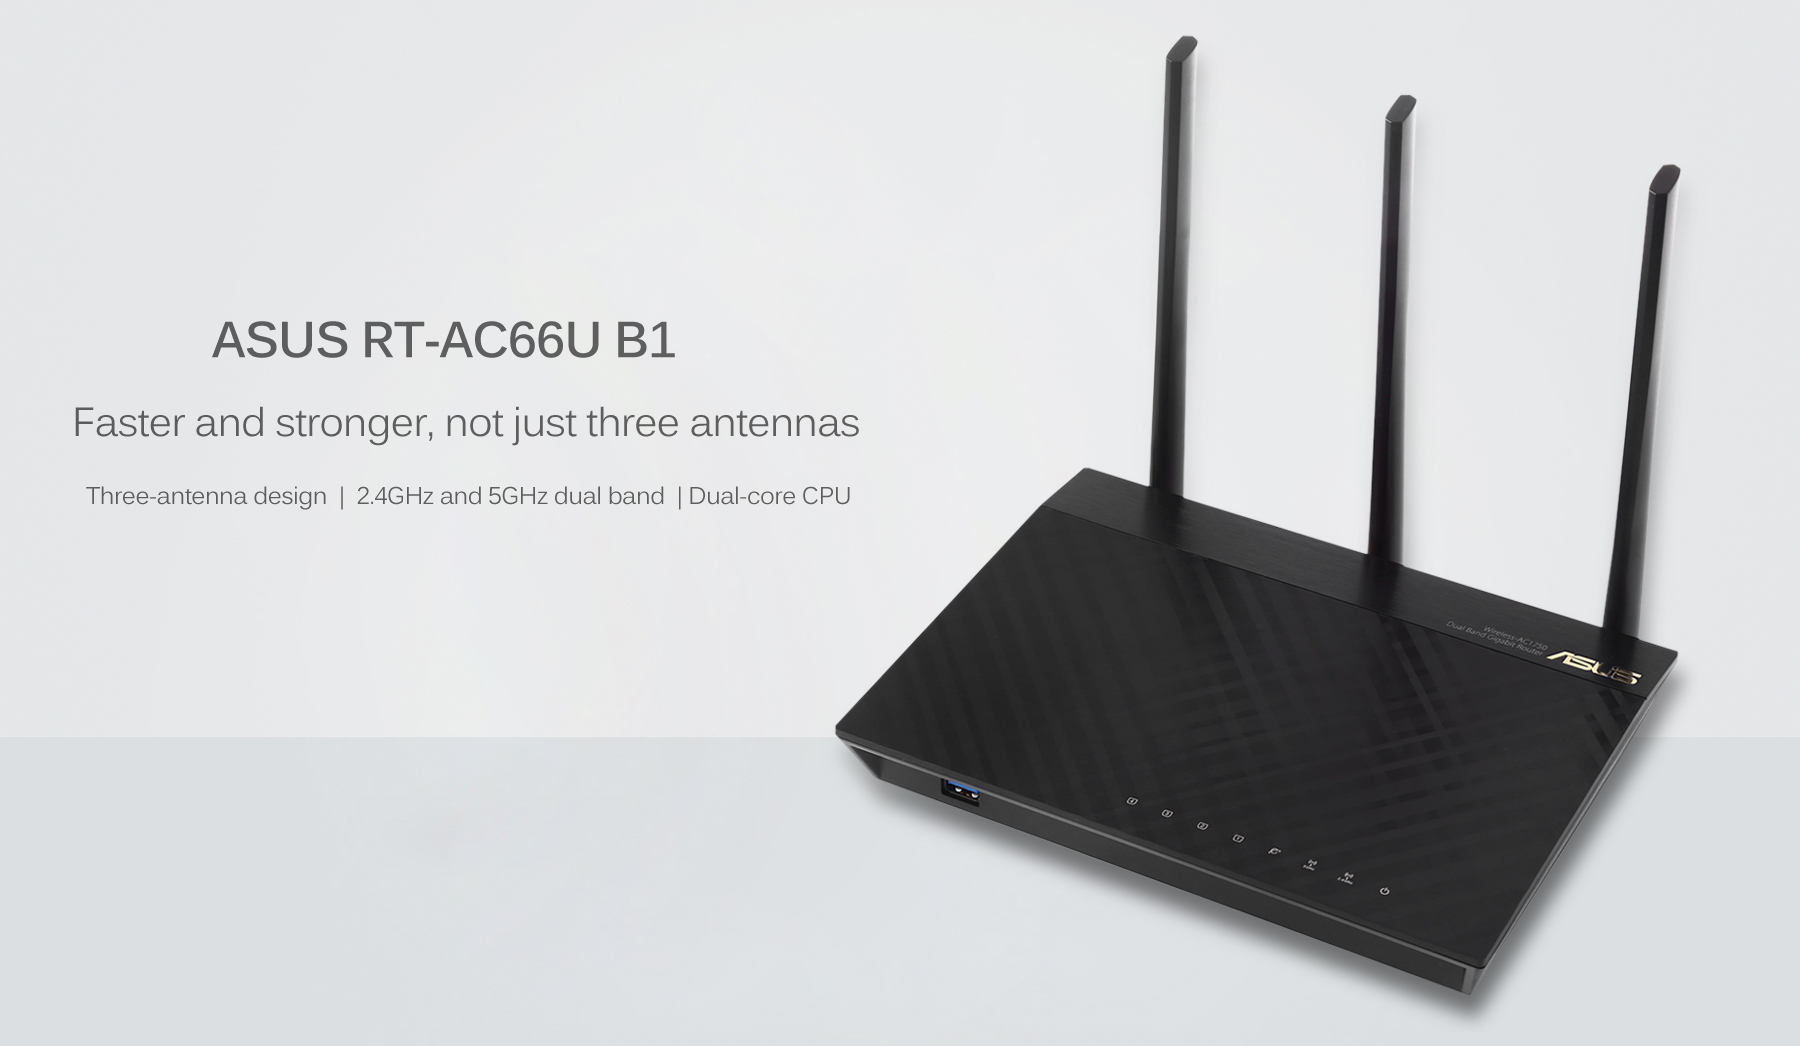 ASUS RT-AC66U WIRELESS ROUTER WINDOWS 8 DRIVERS DOWNLOAD (2019)